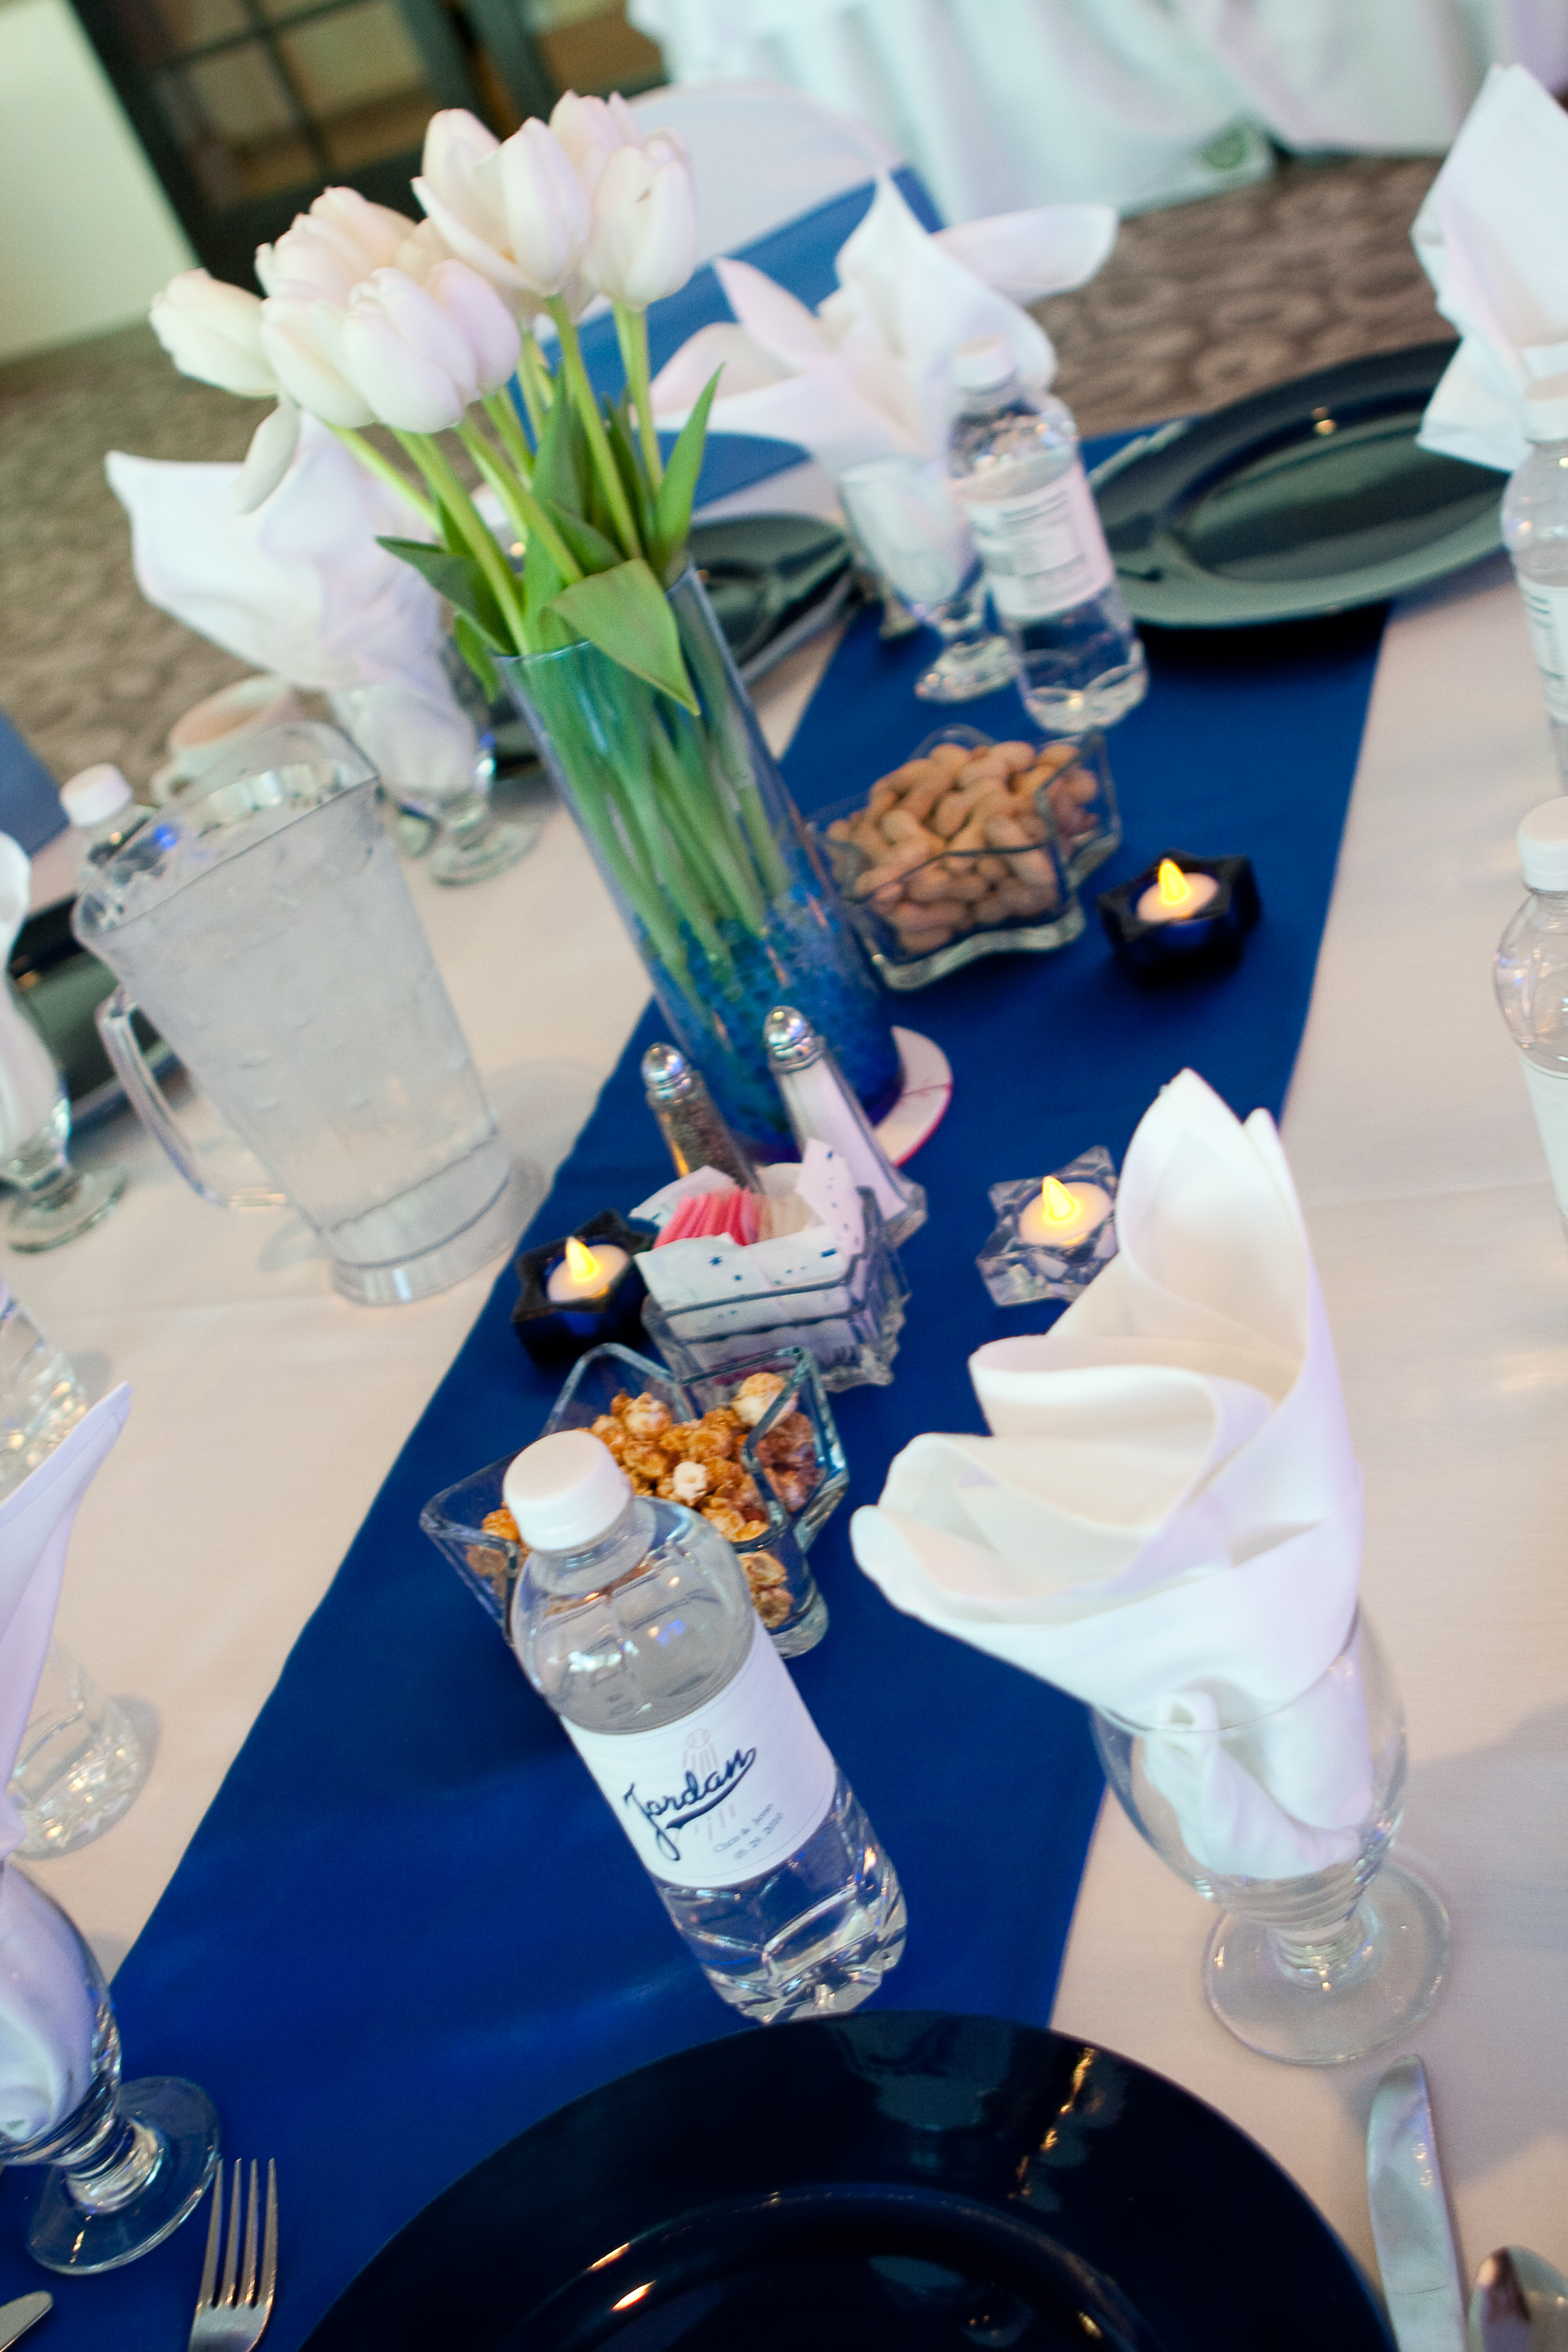 Reception, Flowers & Decor, Photography, white, blue, Centerpieces, Flowers, Centerpiece, Tulips, Hollis, Cari